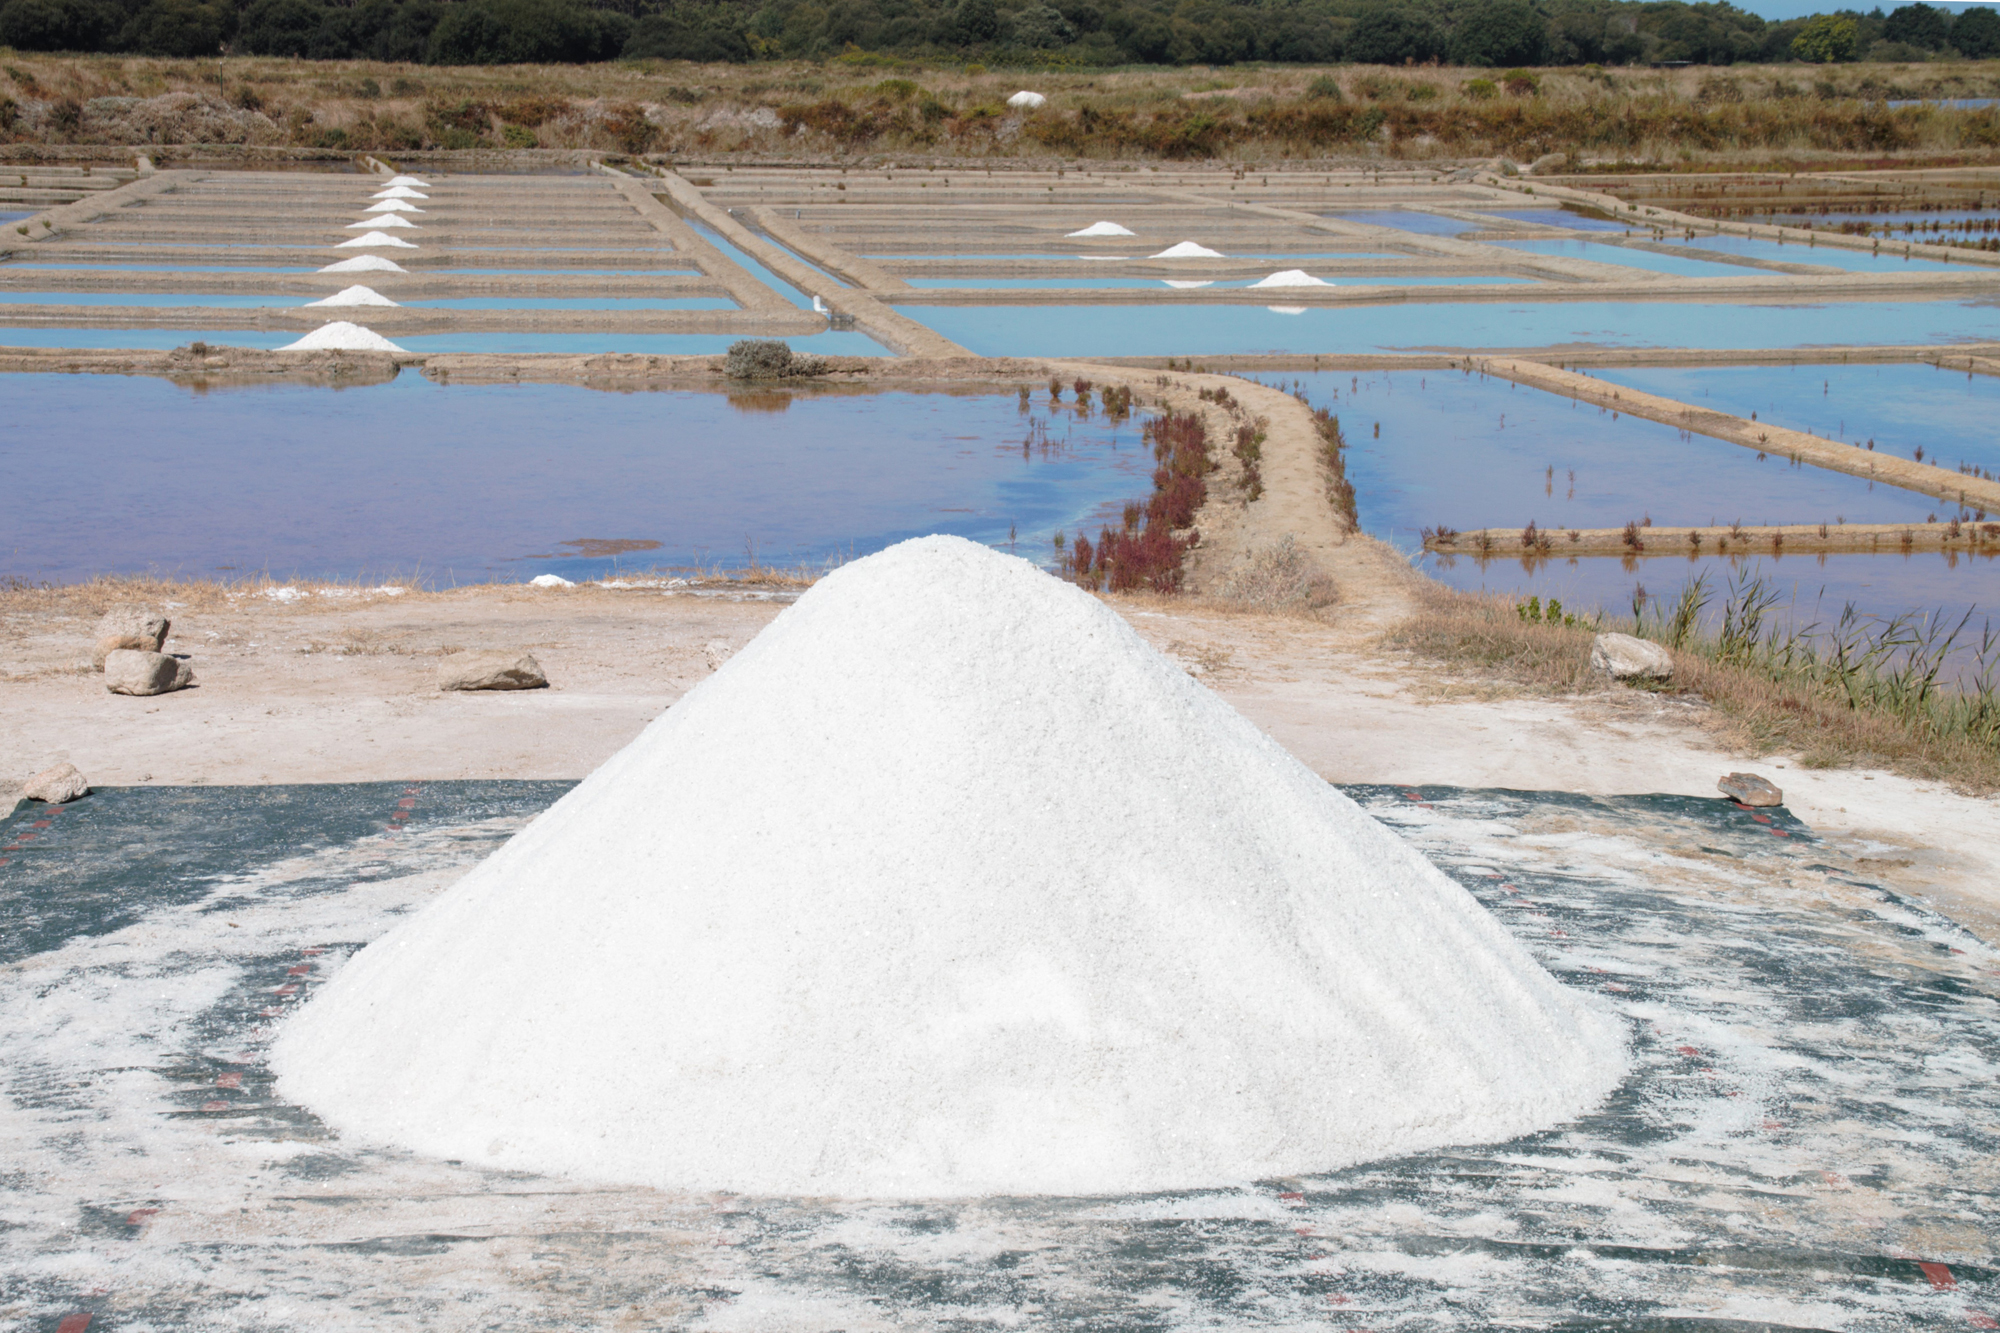 Guerande, France, where Europe's most prized sea salt is made by hand.  Marais salants - salt marshes  by Jeanne Menjoulet /  CC BY